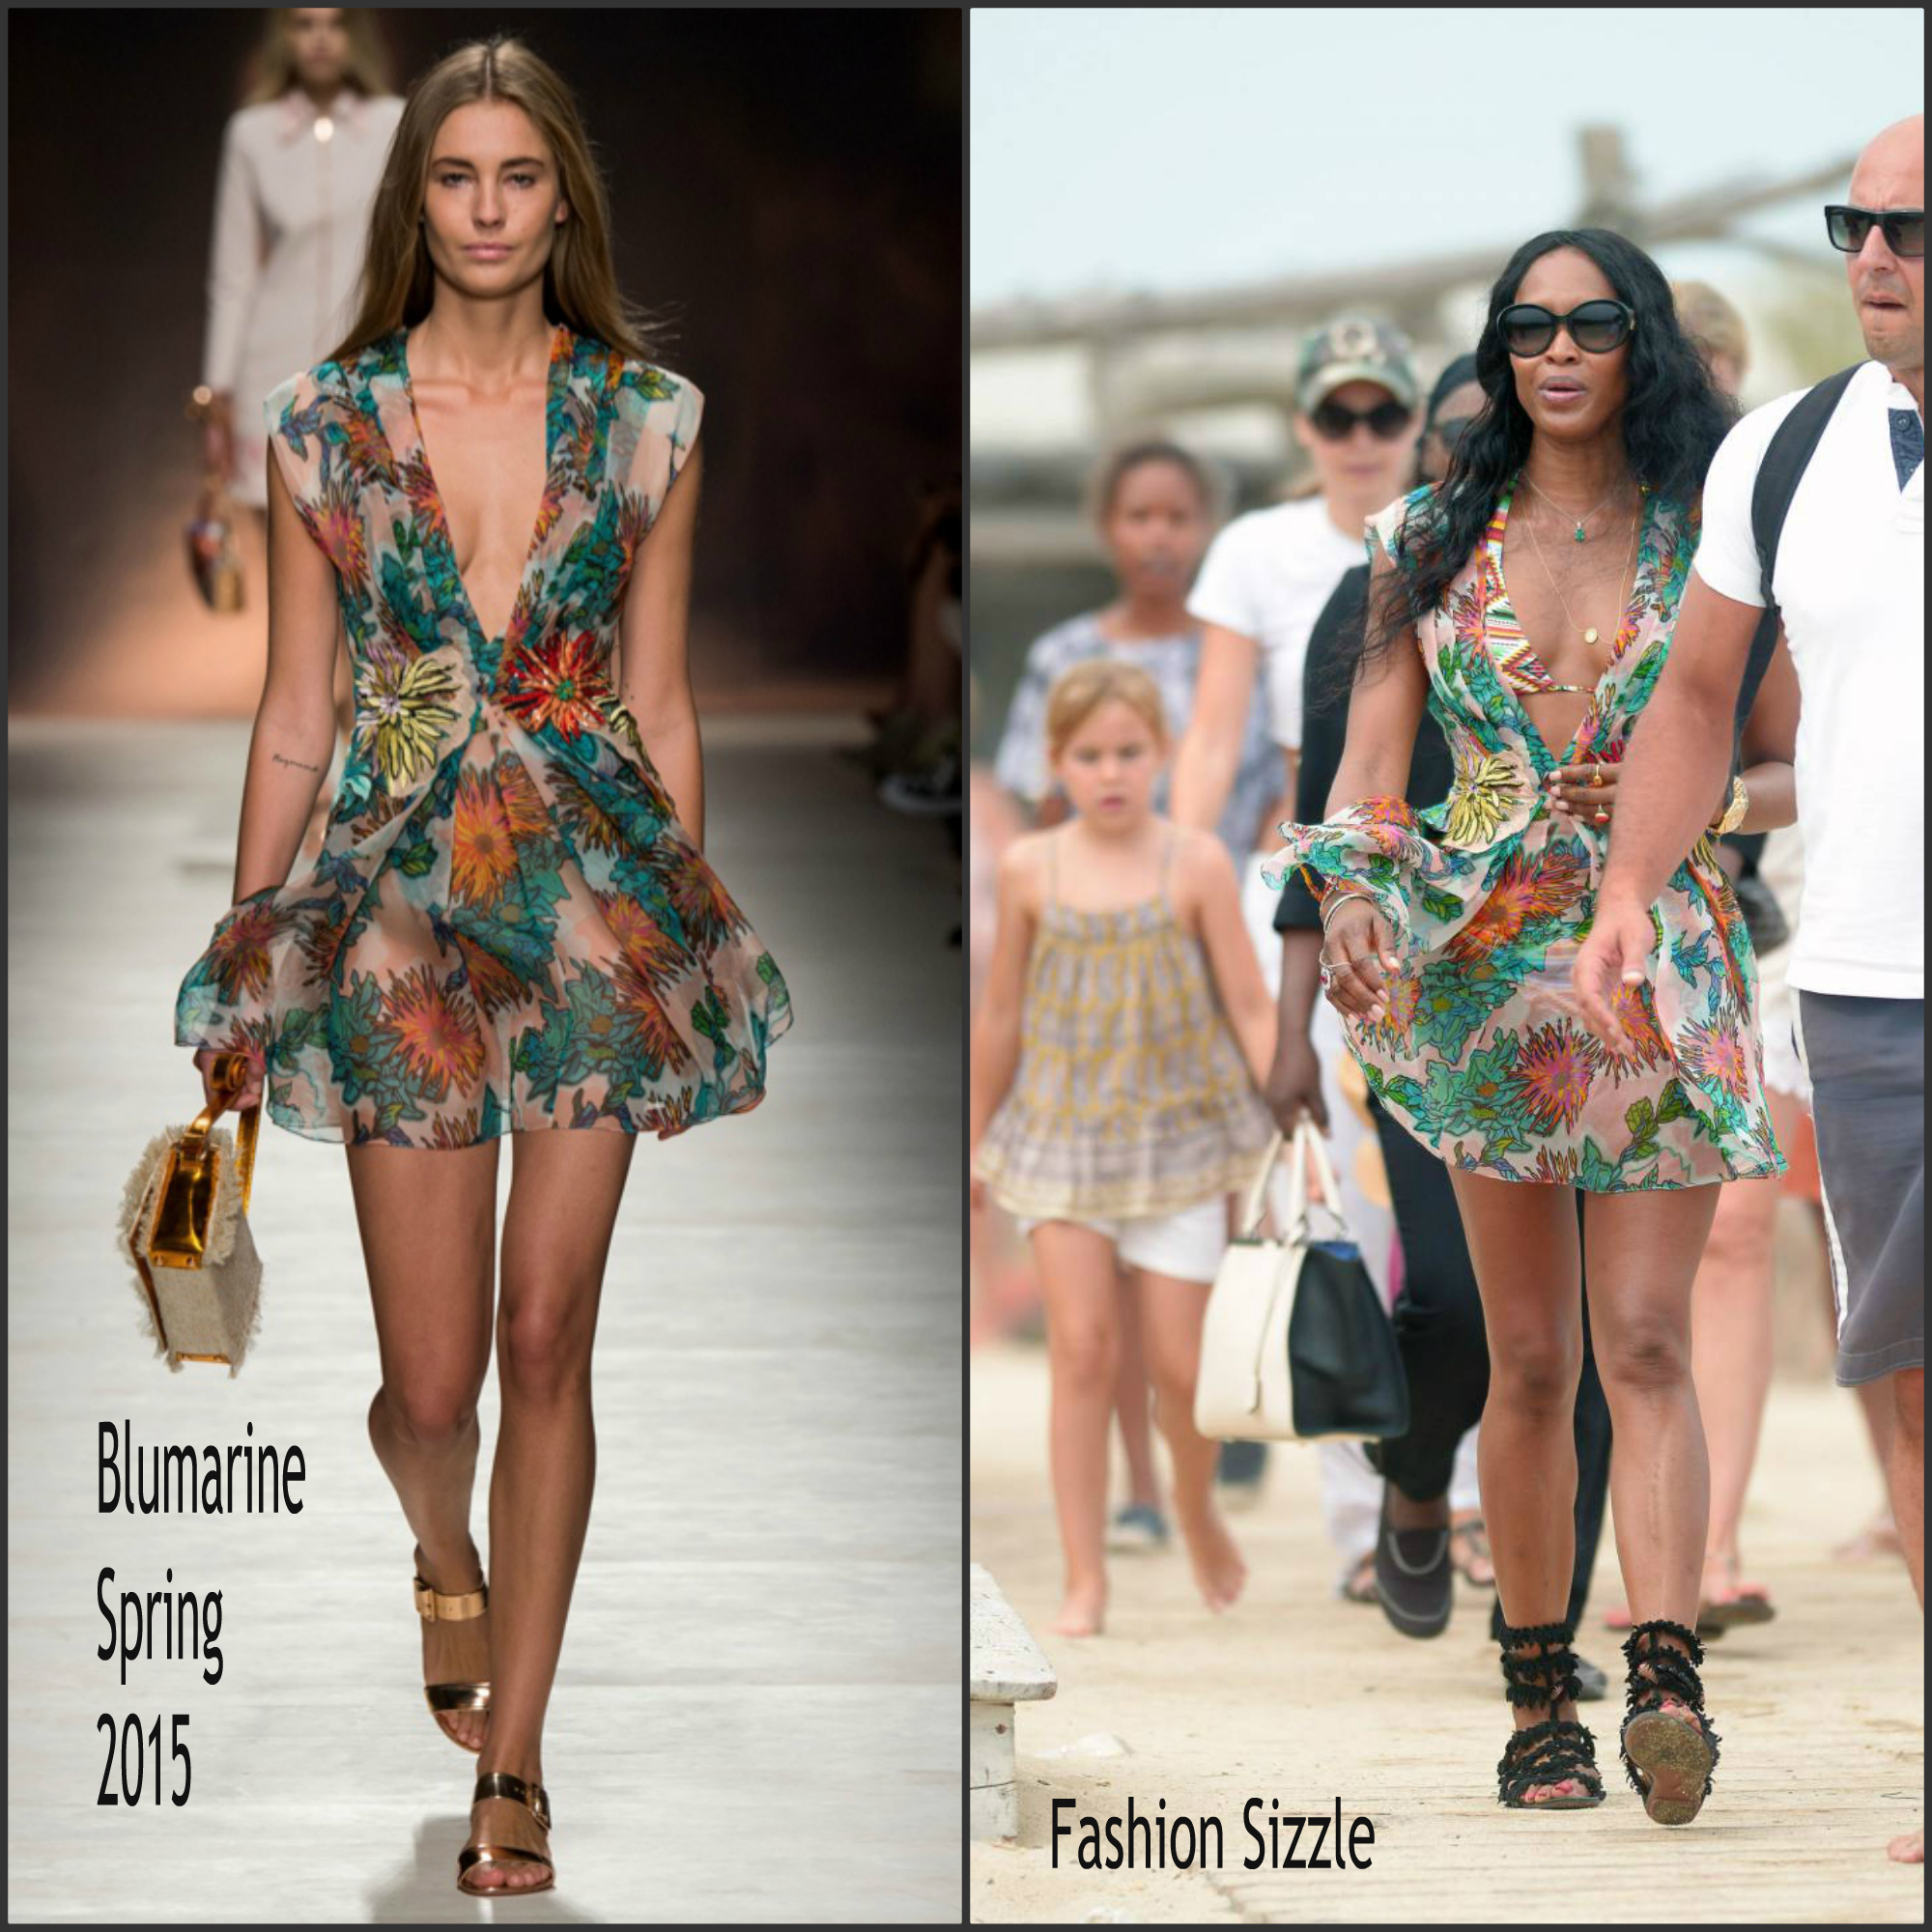 naomi-campbell-in-blumarine-out-in-st-tropez